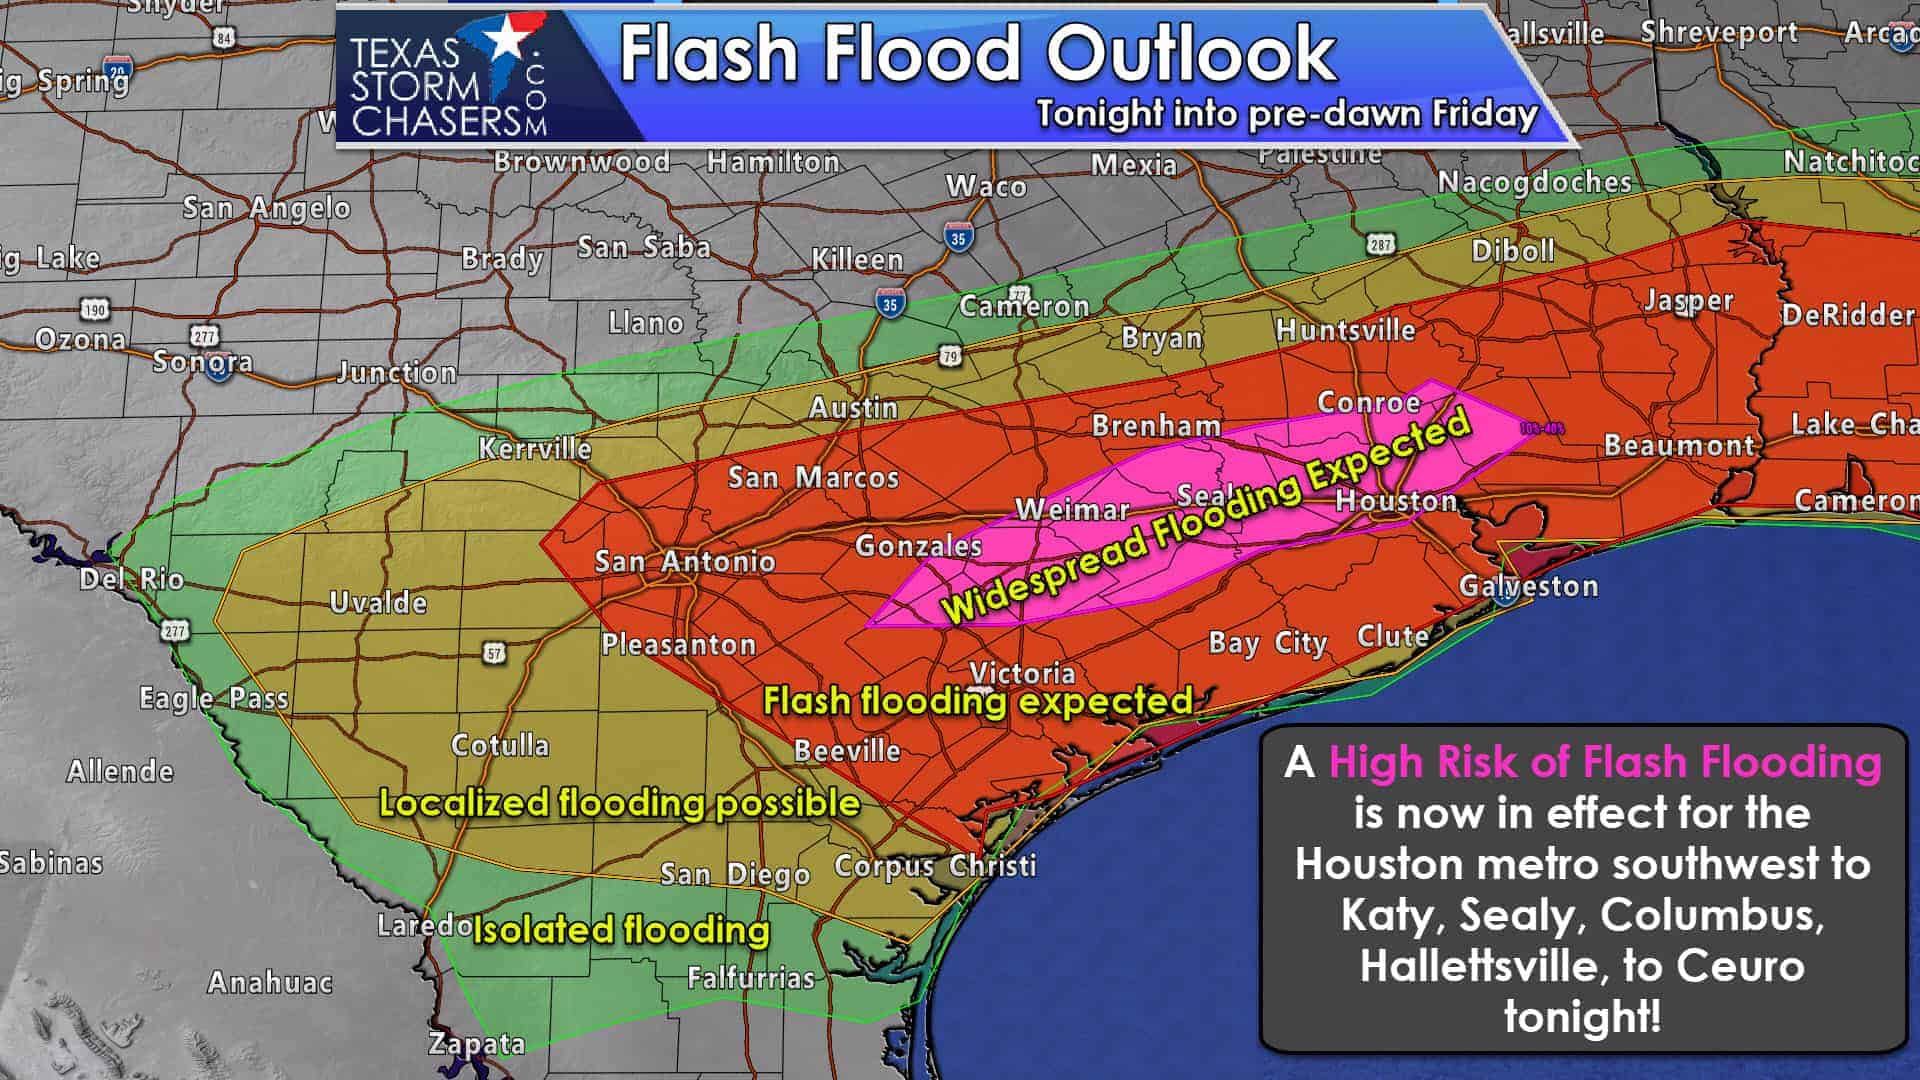 9:30PM Severe Weather & Flash Flood Situation Update